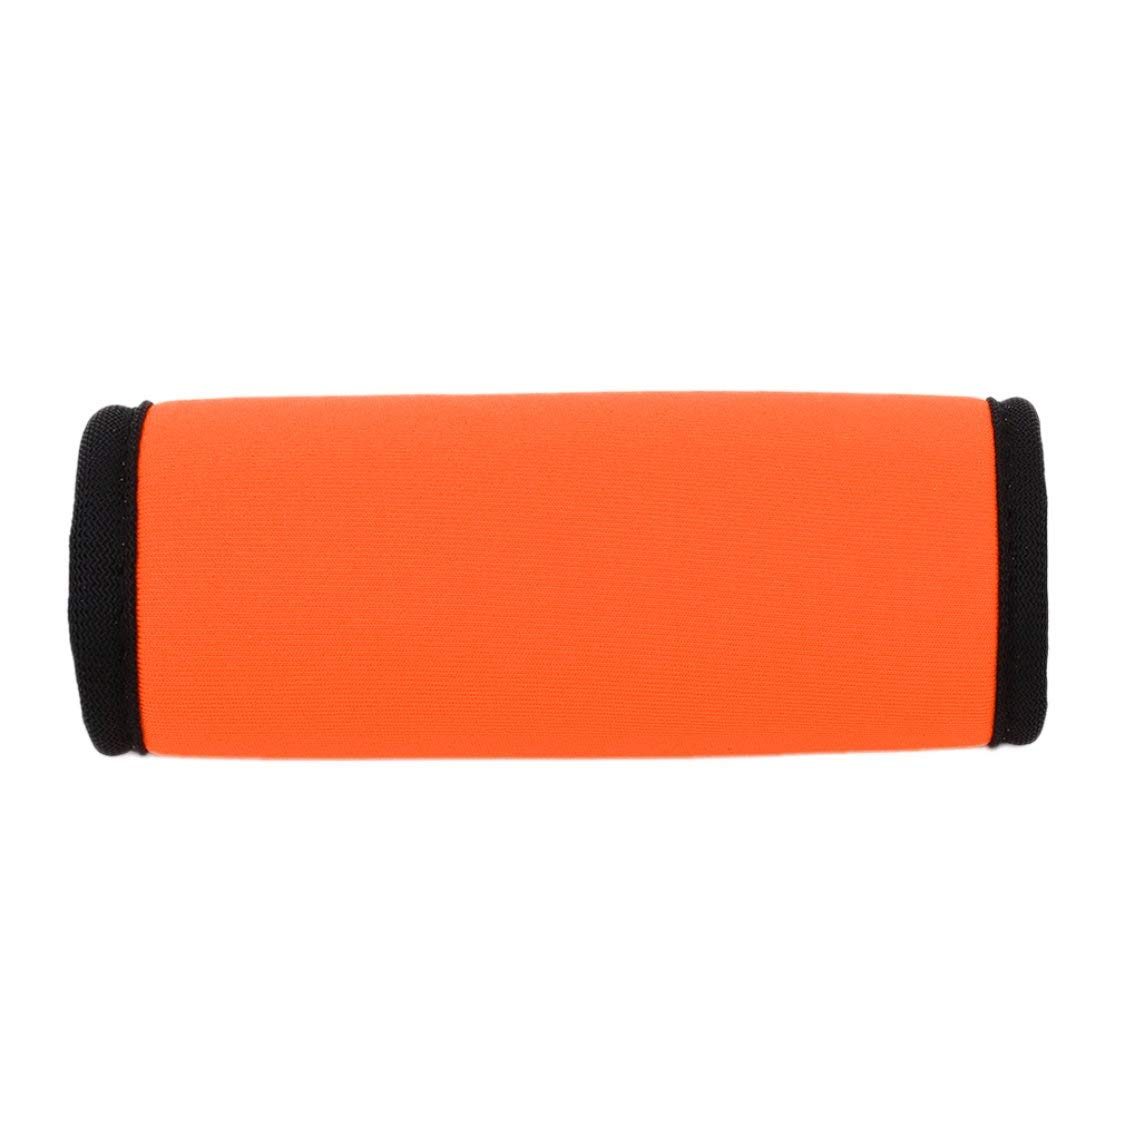 Comfortable Light Neoprene Handle Wraps//Grip//Identifier for Travel Bag Luggage Suitcase Fit Any Luggage Handle